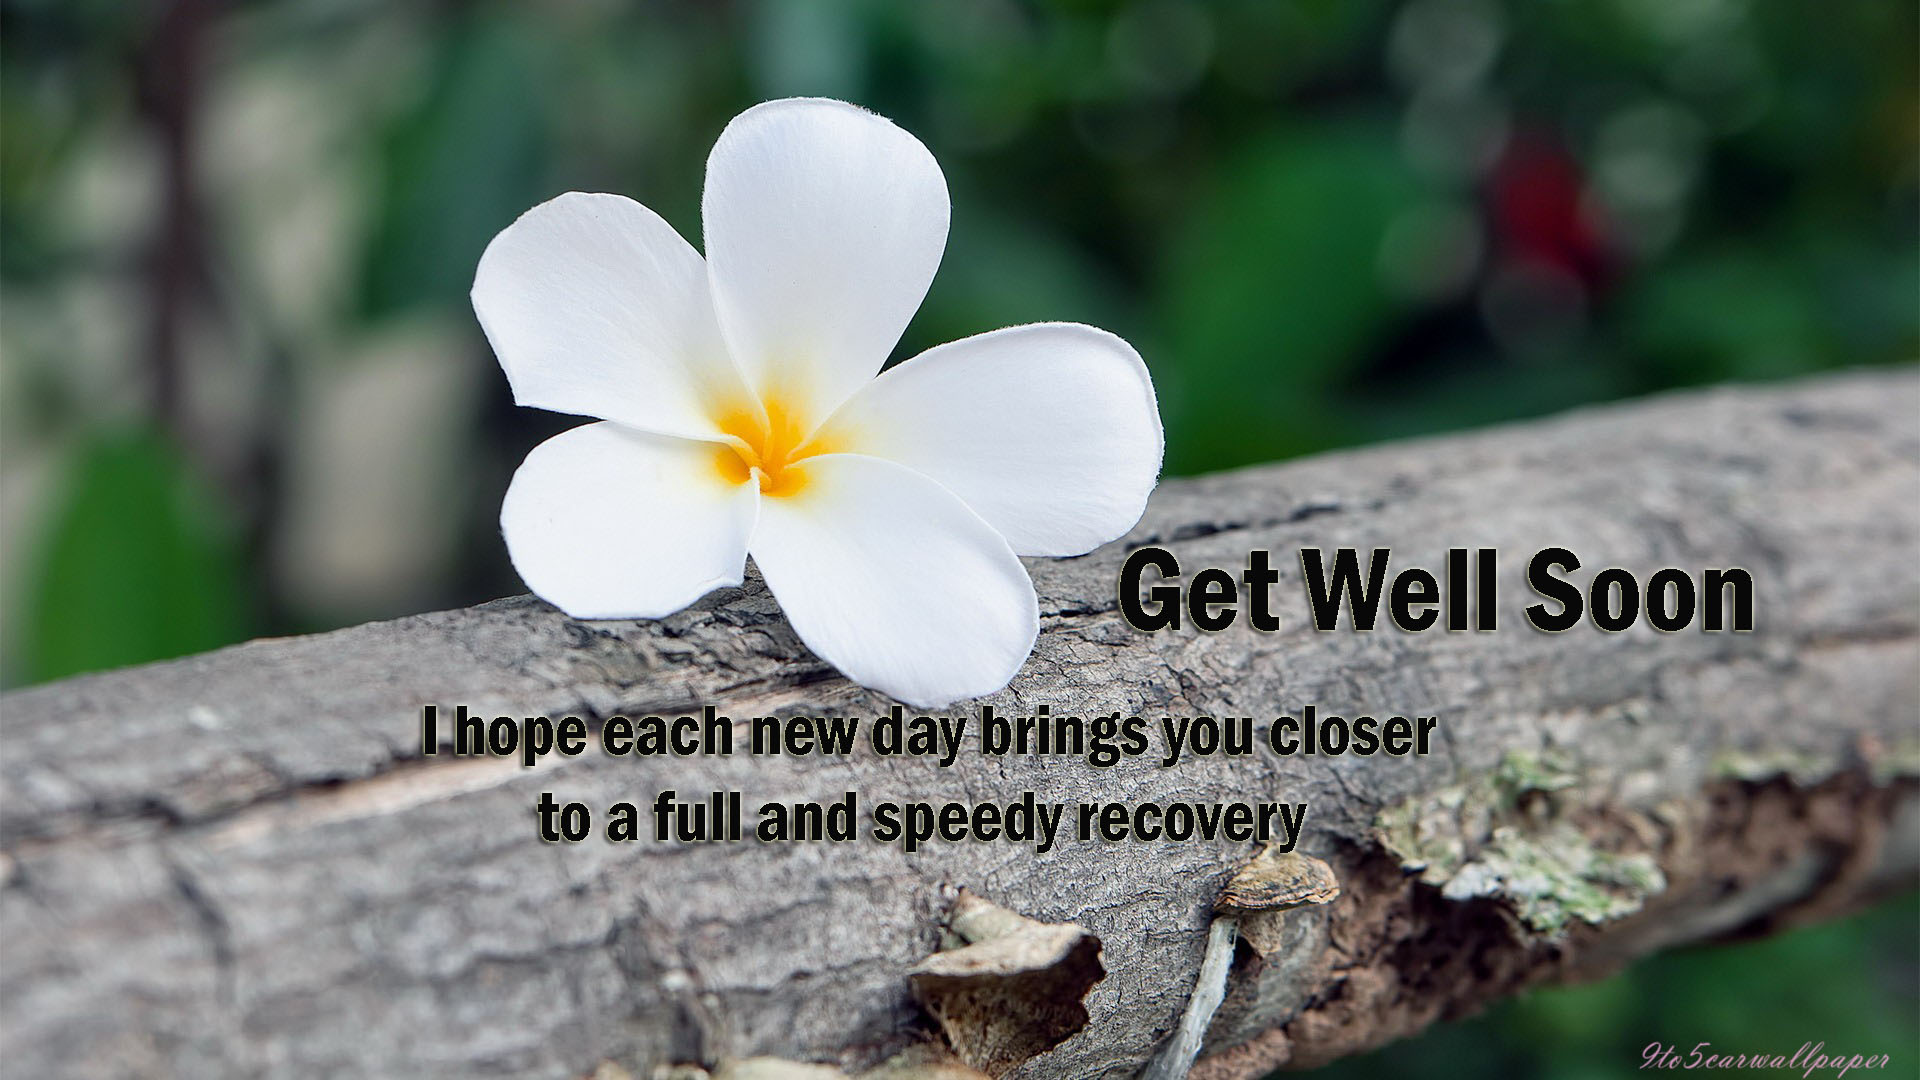 get-well-images-cards-posters